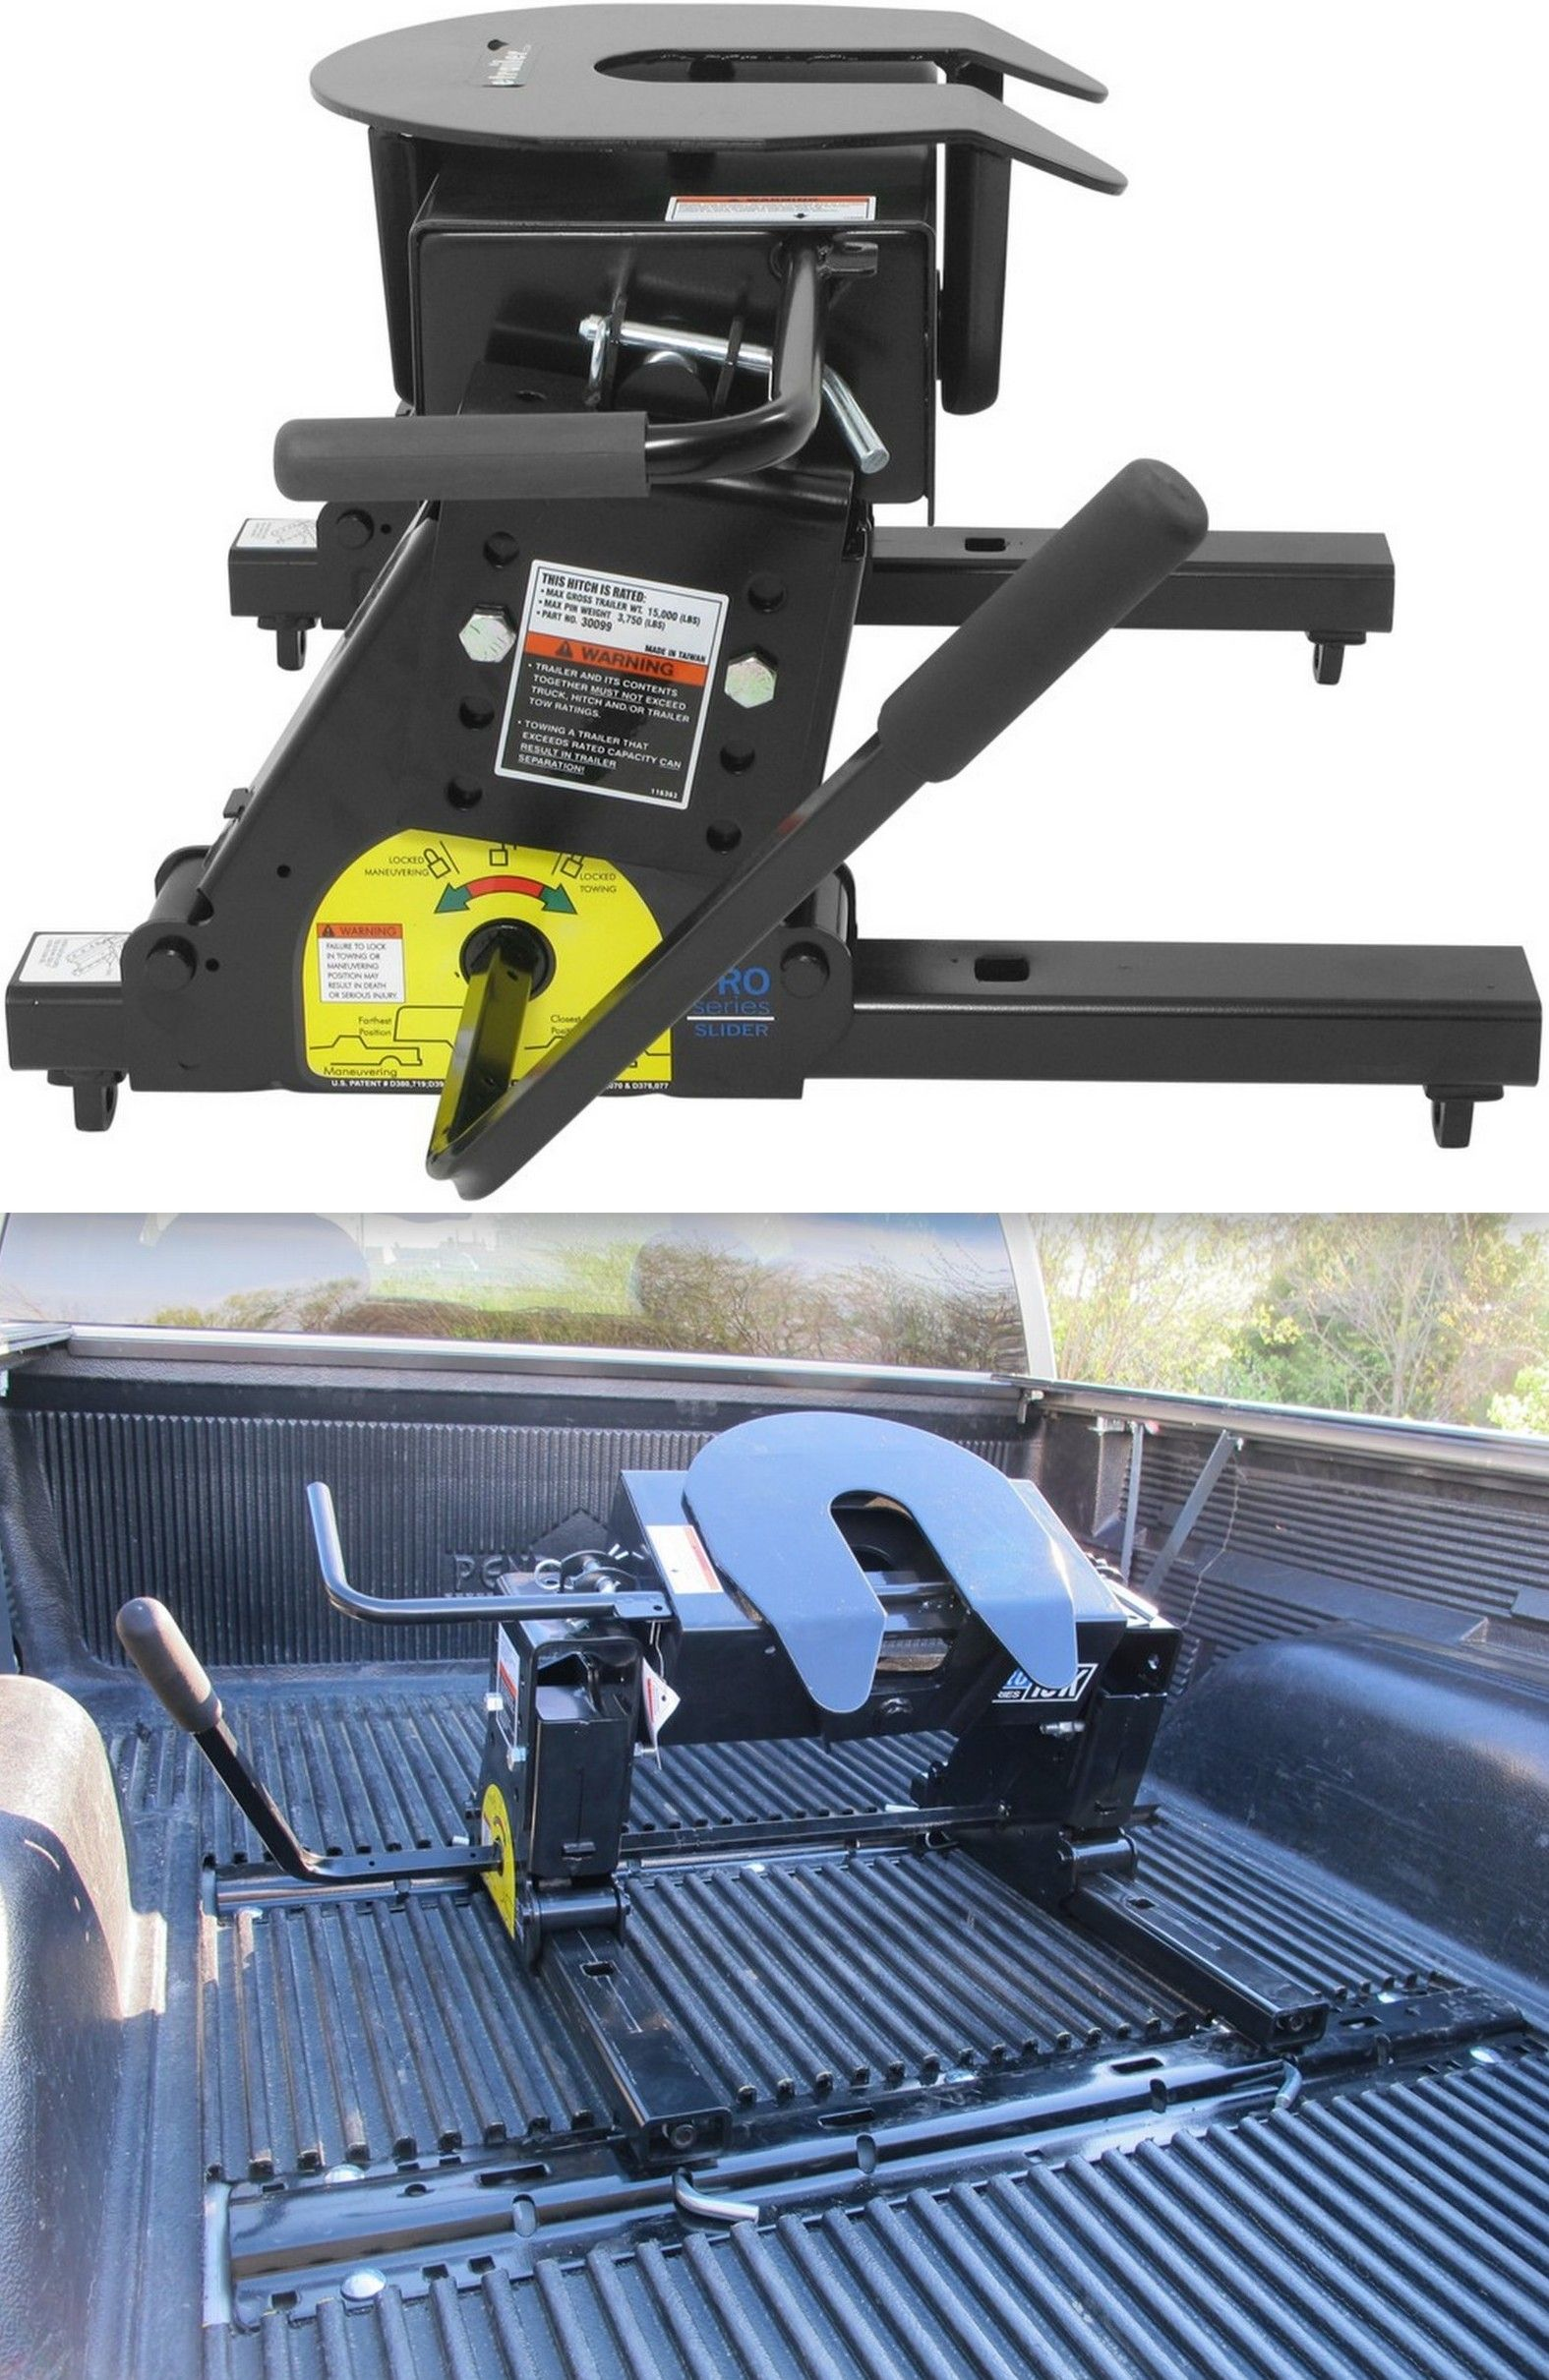 Pickup trucks perfect for short bed trucks this fifth wheel trailer hitch has a slider that moves the hitch and king pin closer to the tailgate to